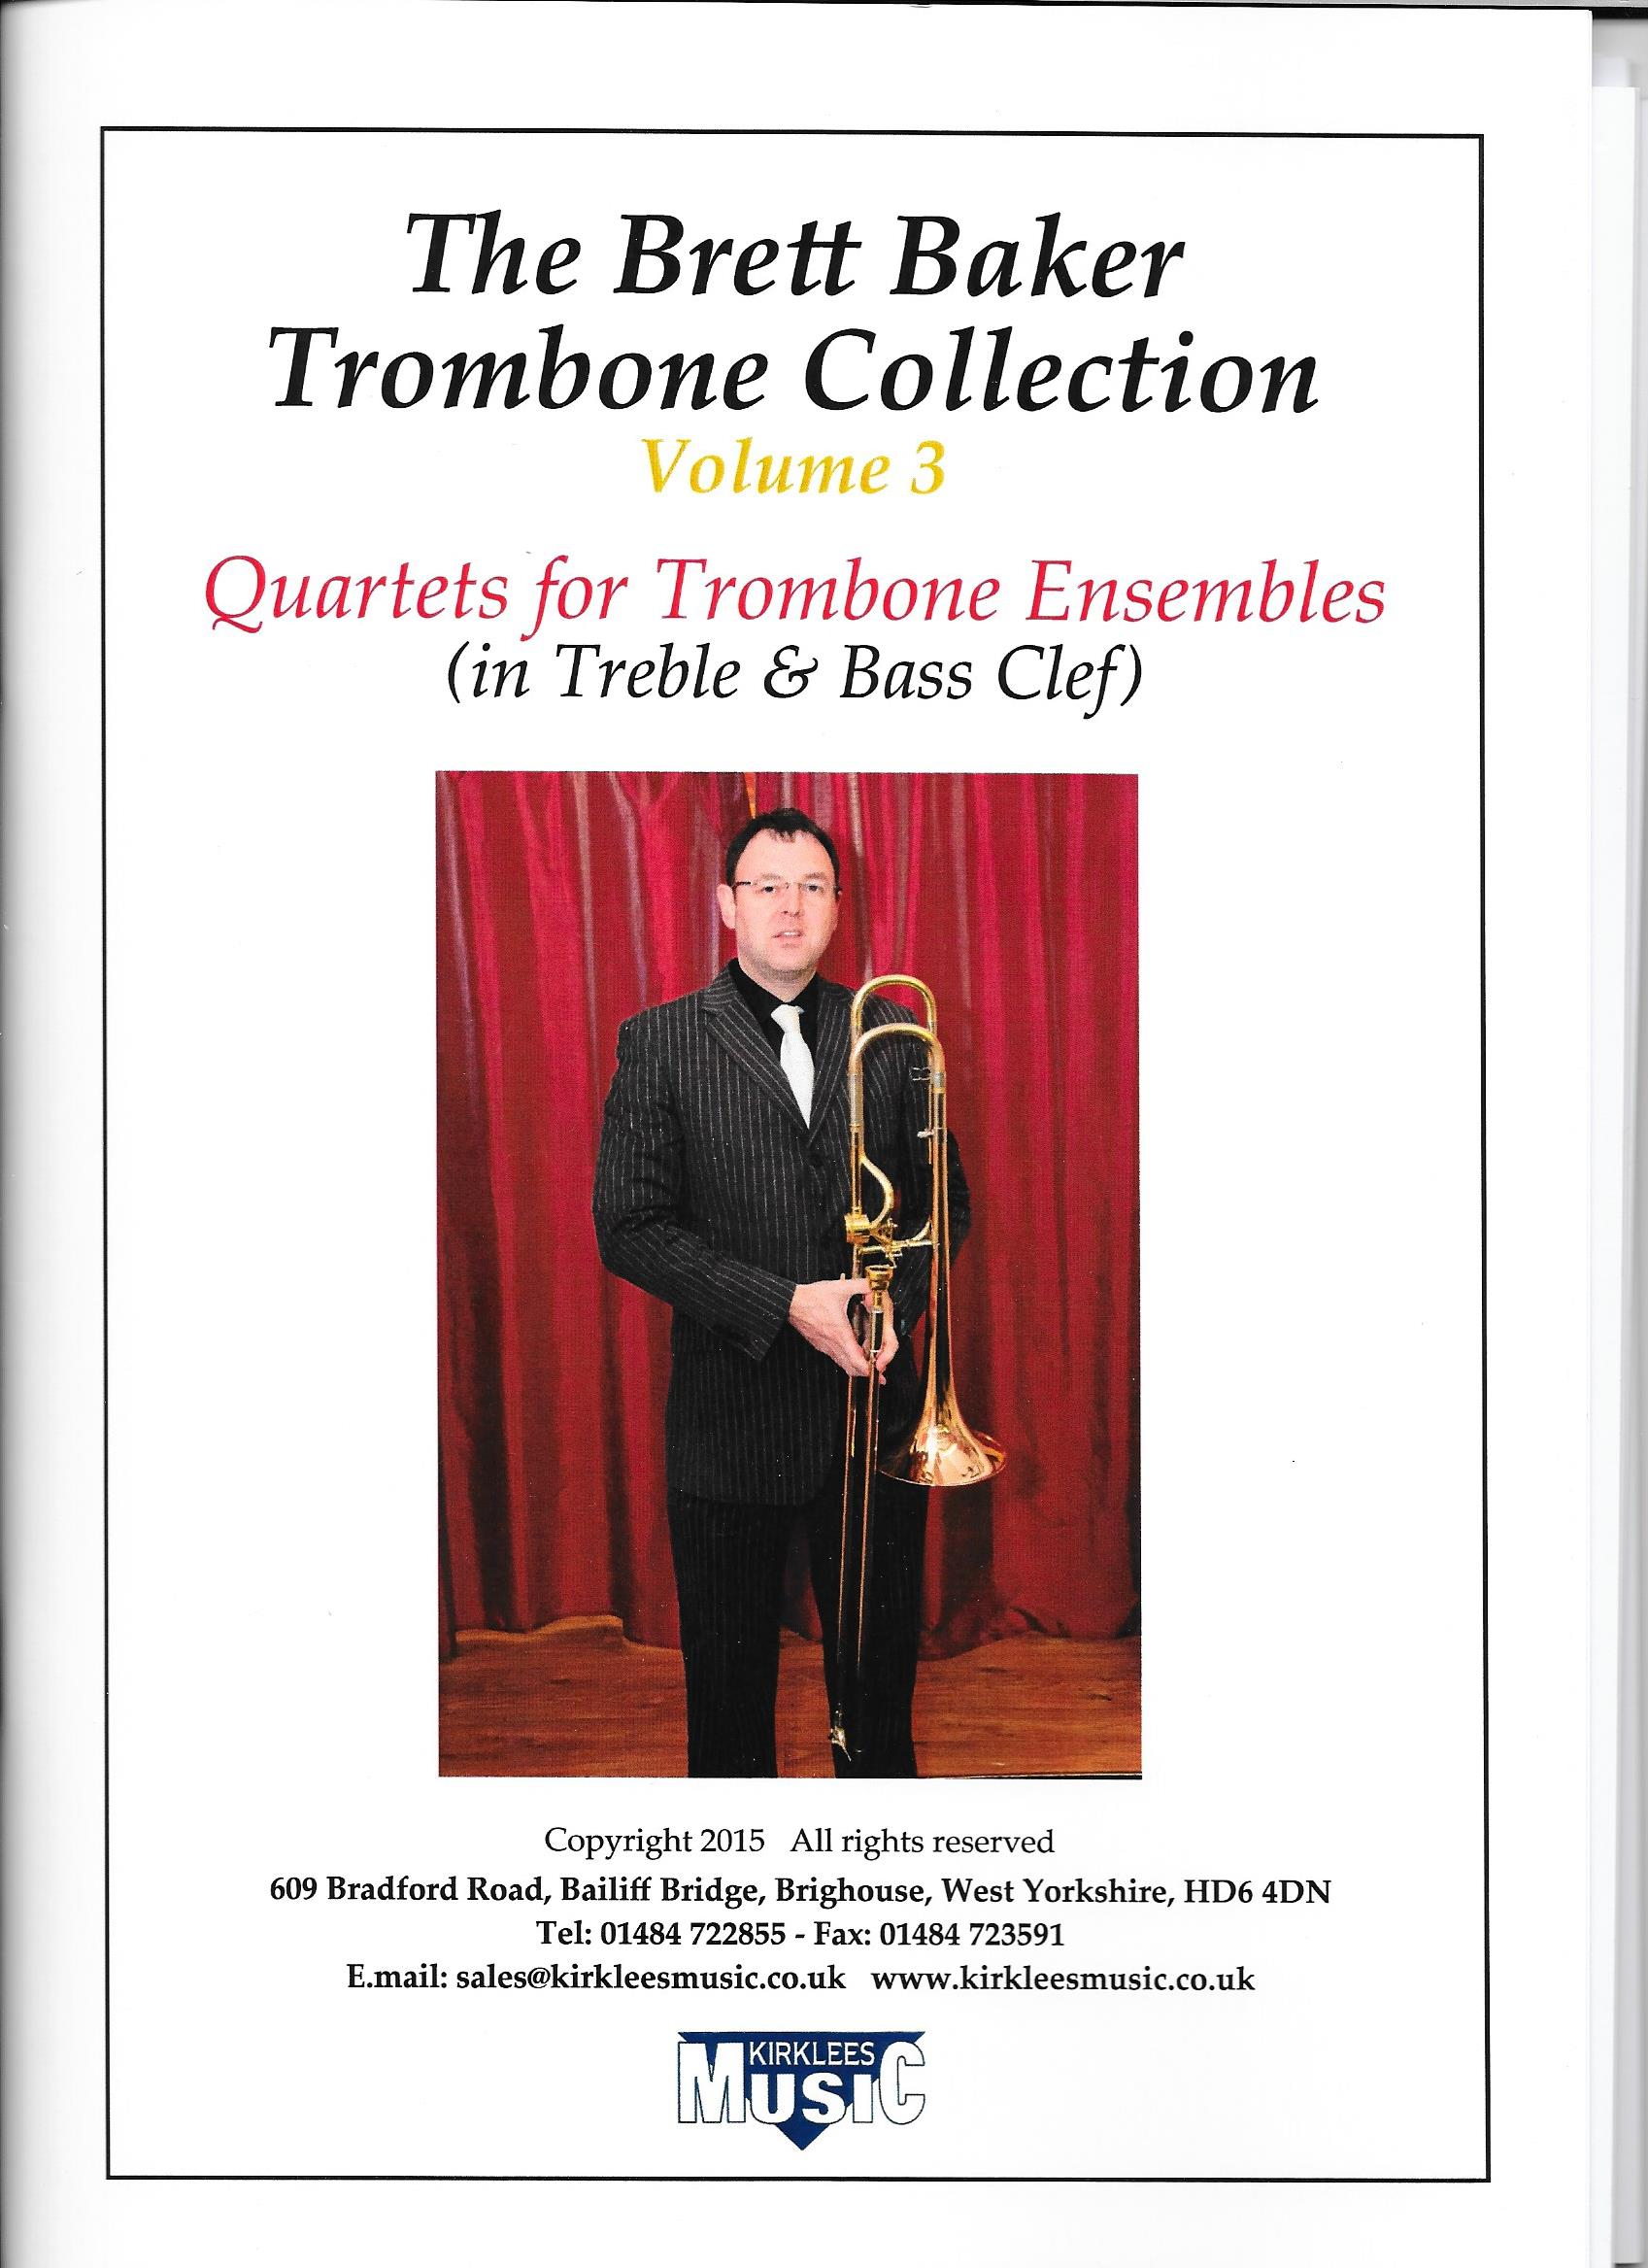 Sheet Music - The Brett Baker Trombone Collection Vol. 3 (Quartets)